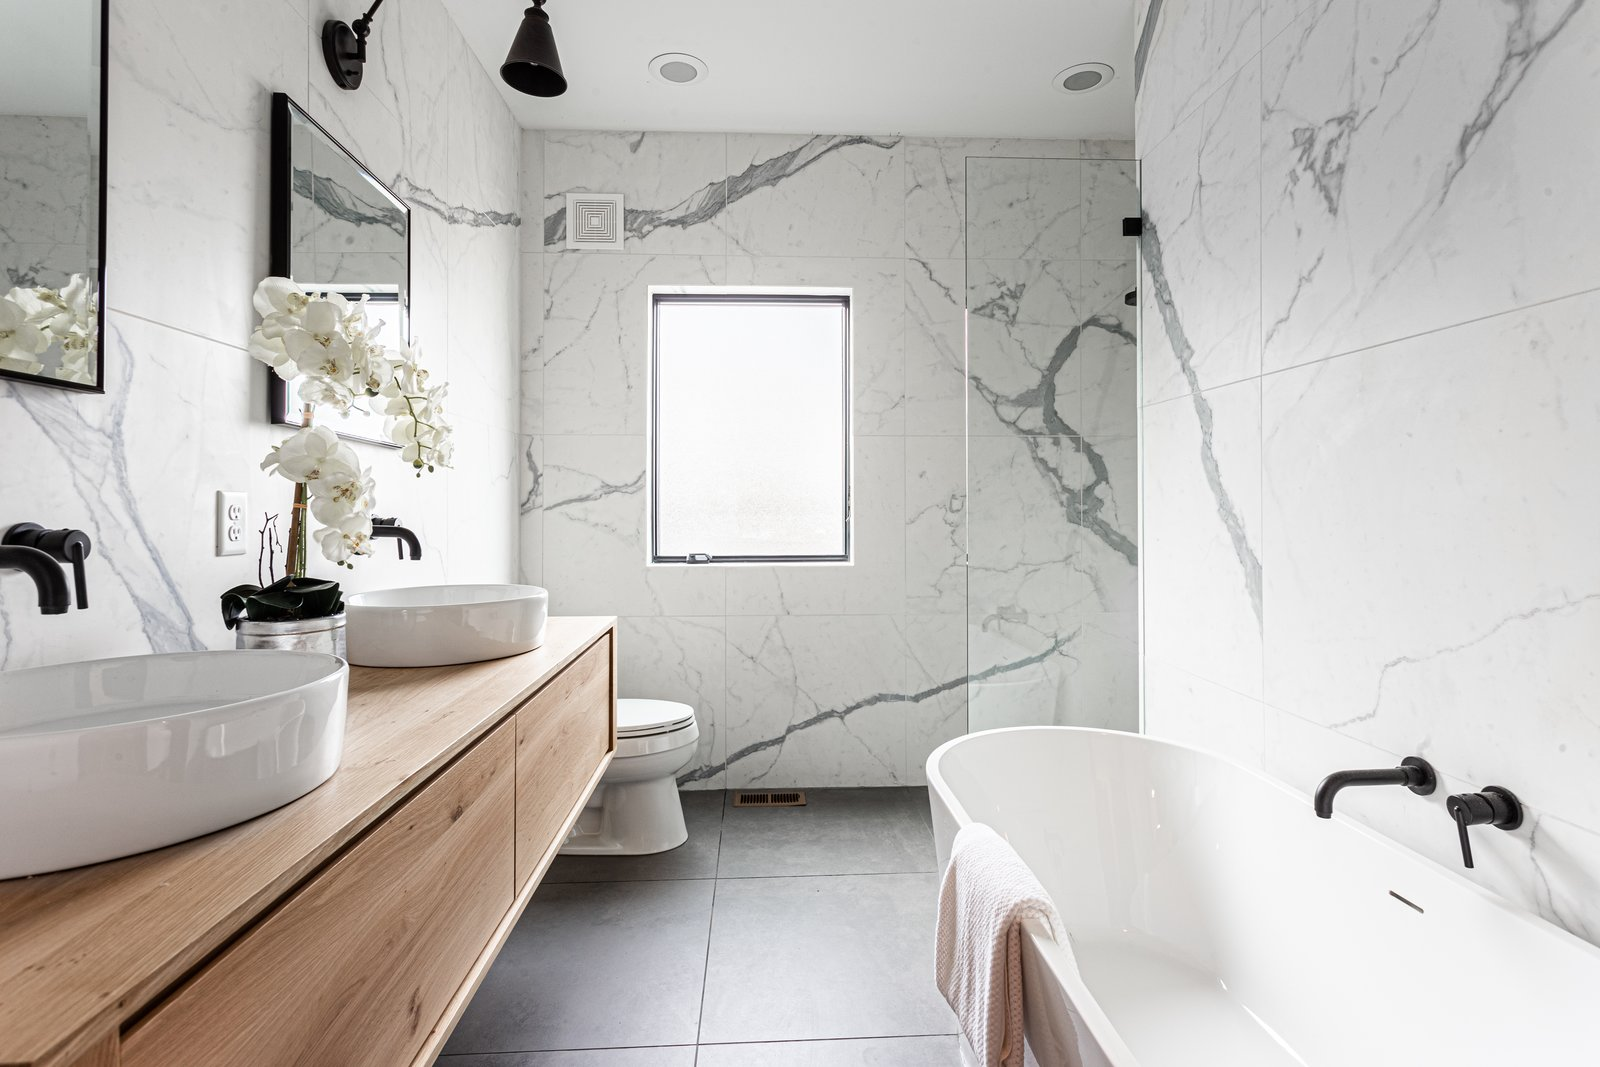 Bath, One Piece, Open, Stone Tile, Wall, Freestanding, Vessel, Wood, and Recessed  Bath Wood Freestanding Stone Tile One Piece Photos from Bathrooms